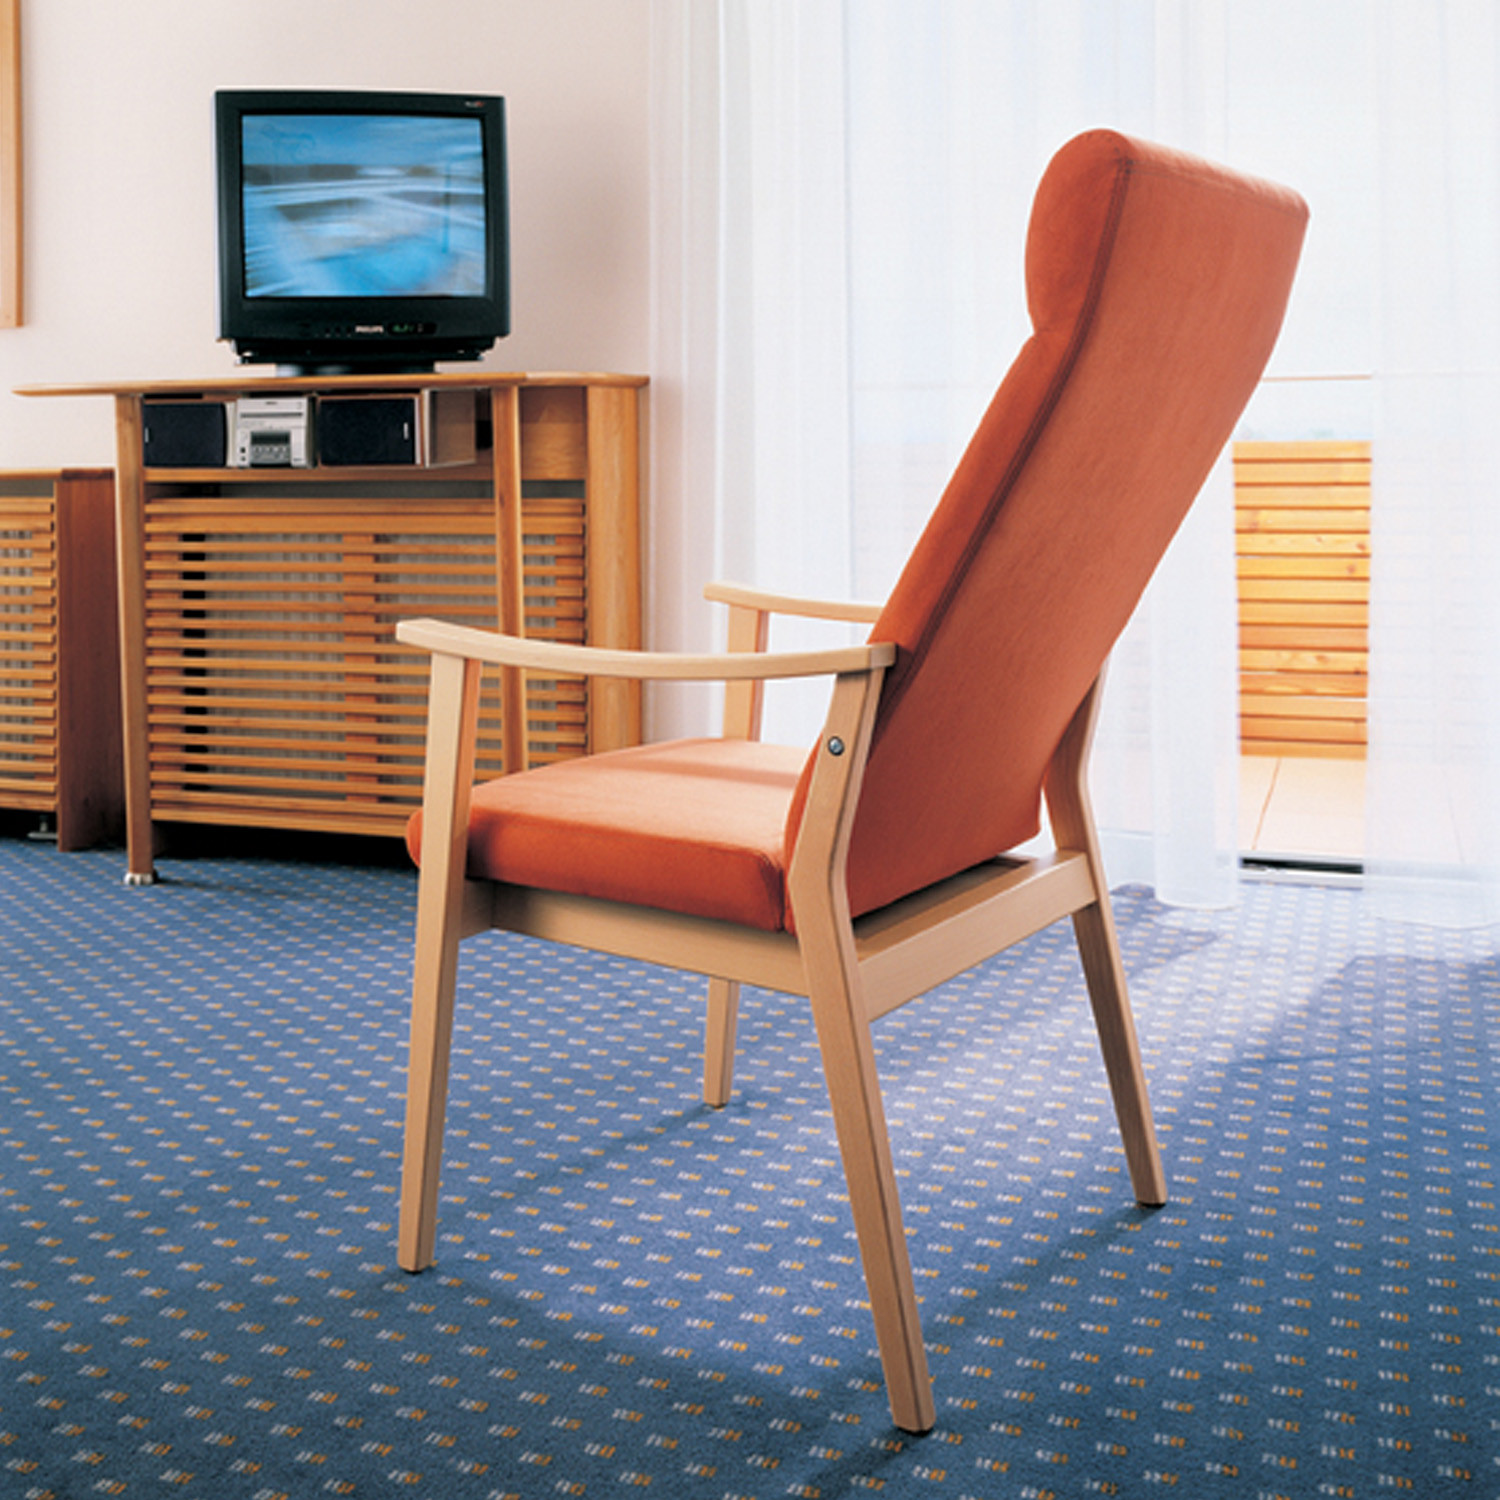 Edward Chair by Martin Ballendat